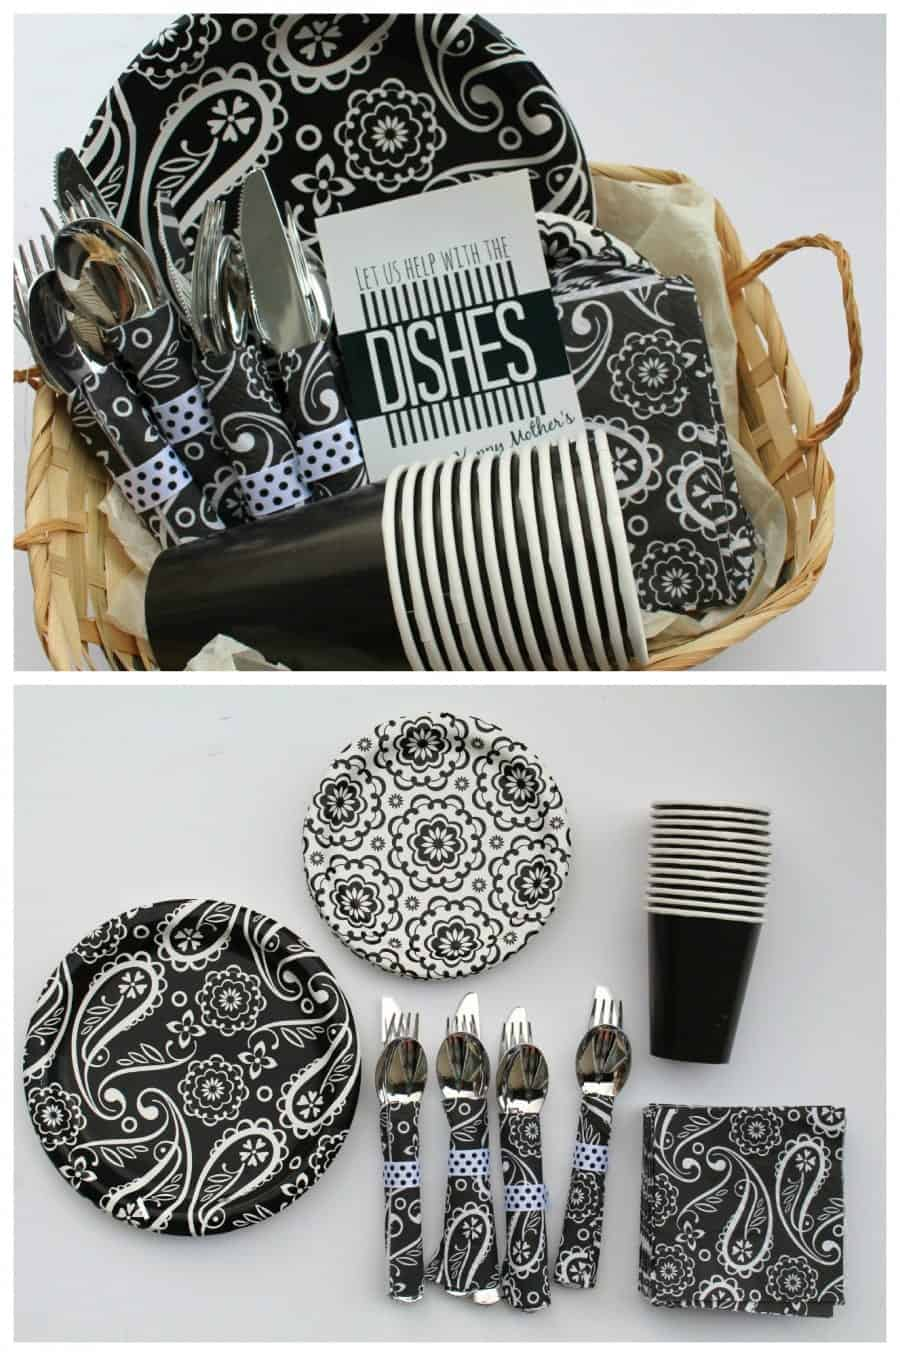 help with dishes gift and printable